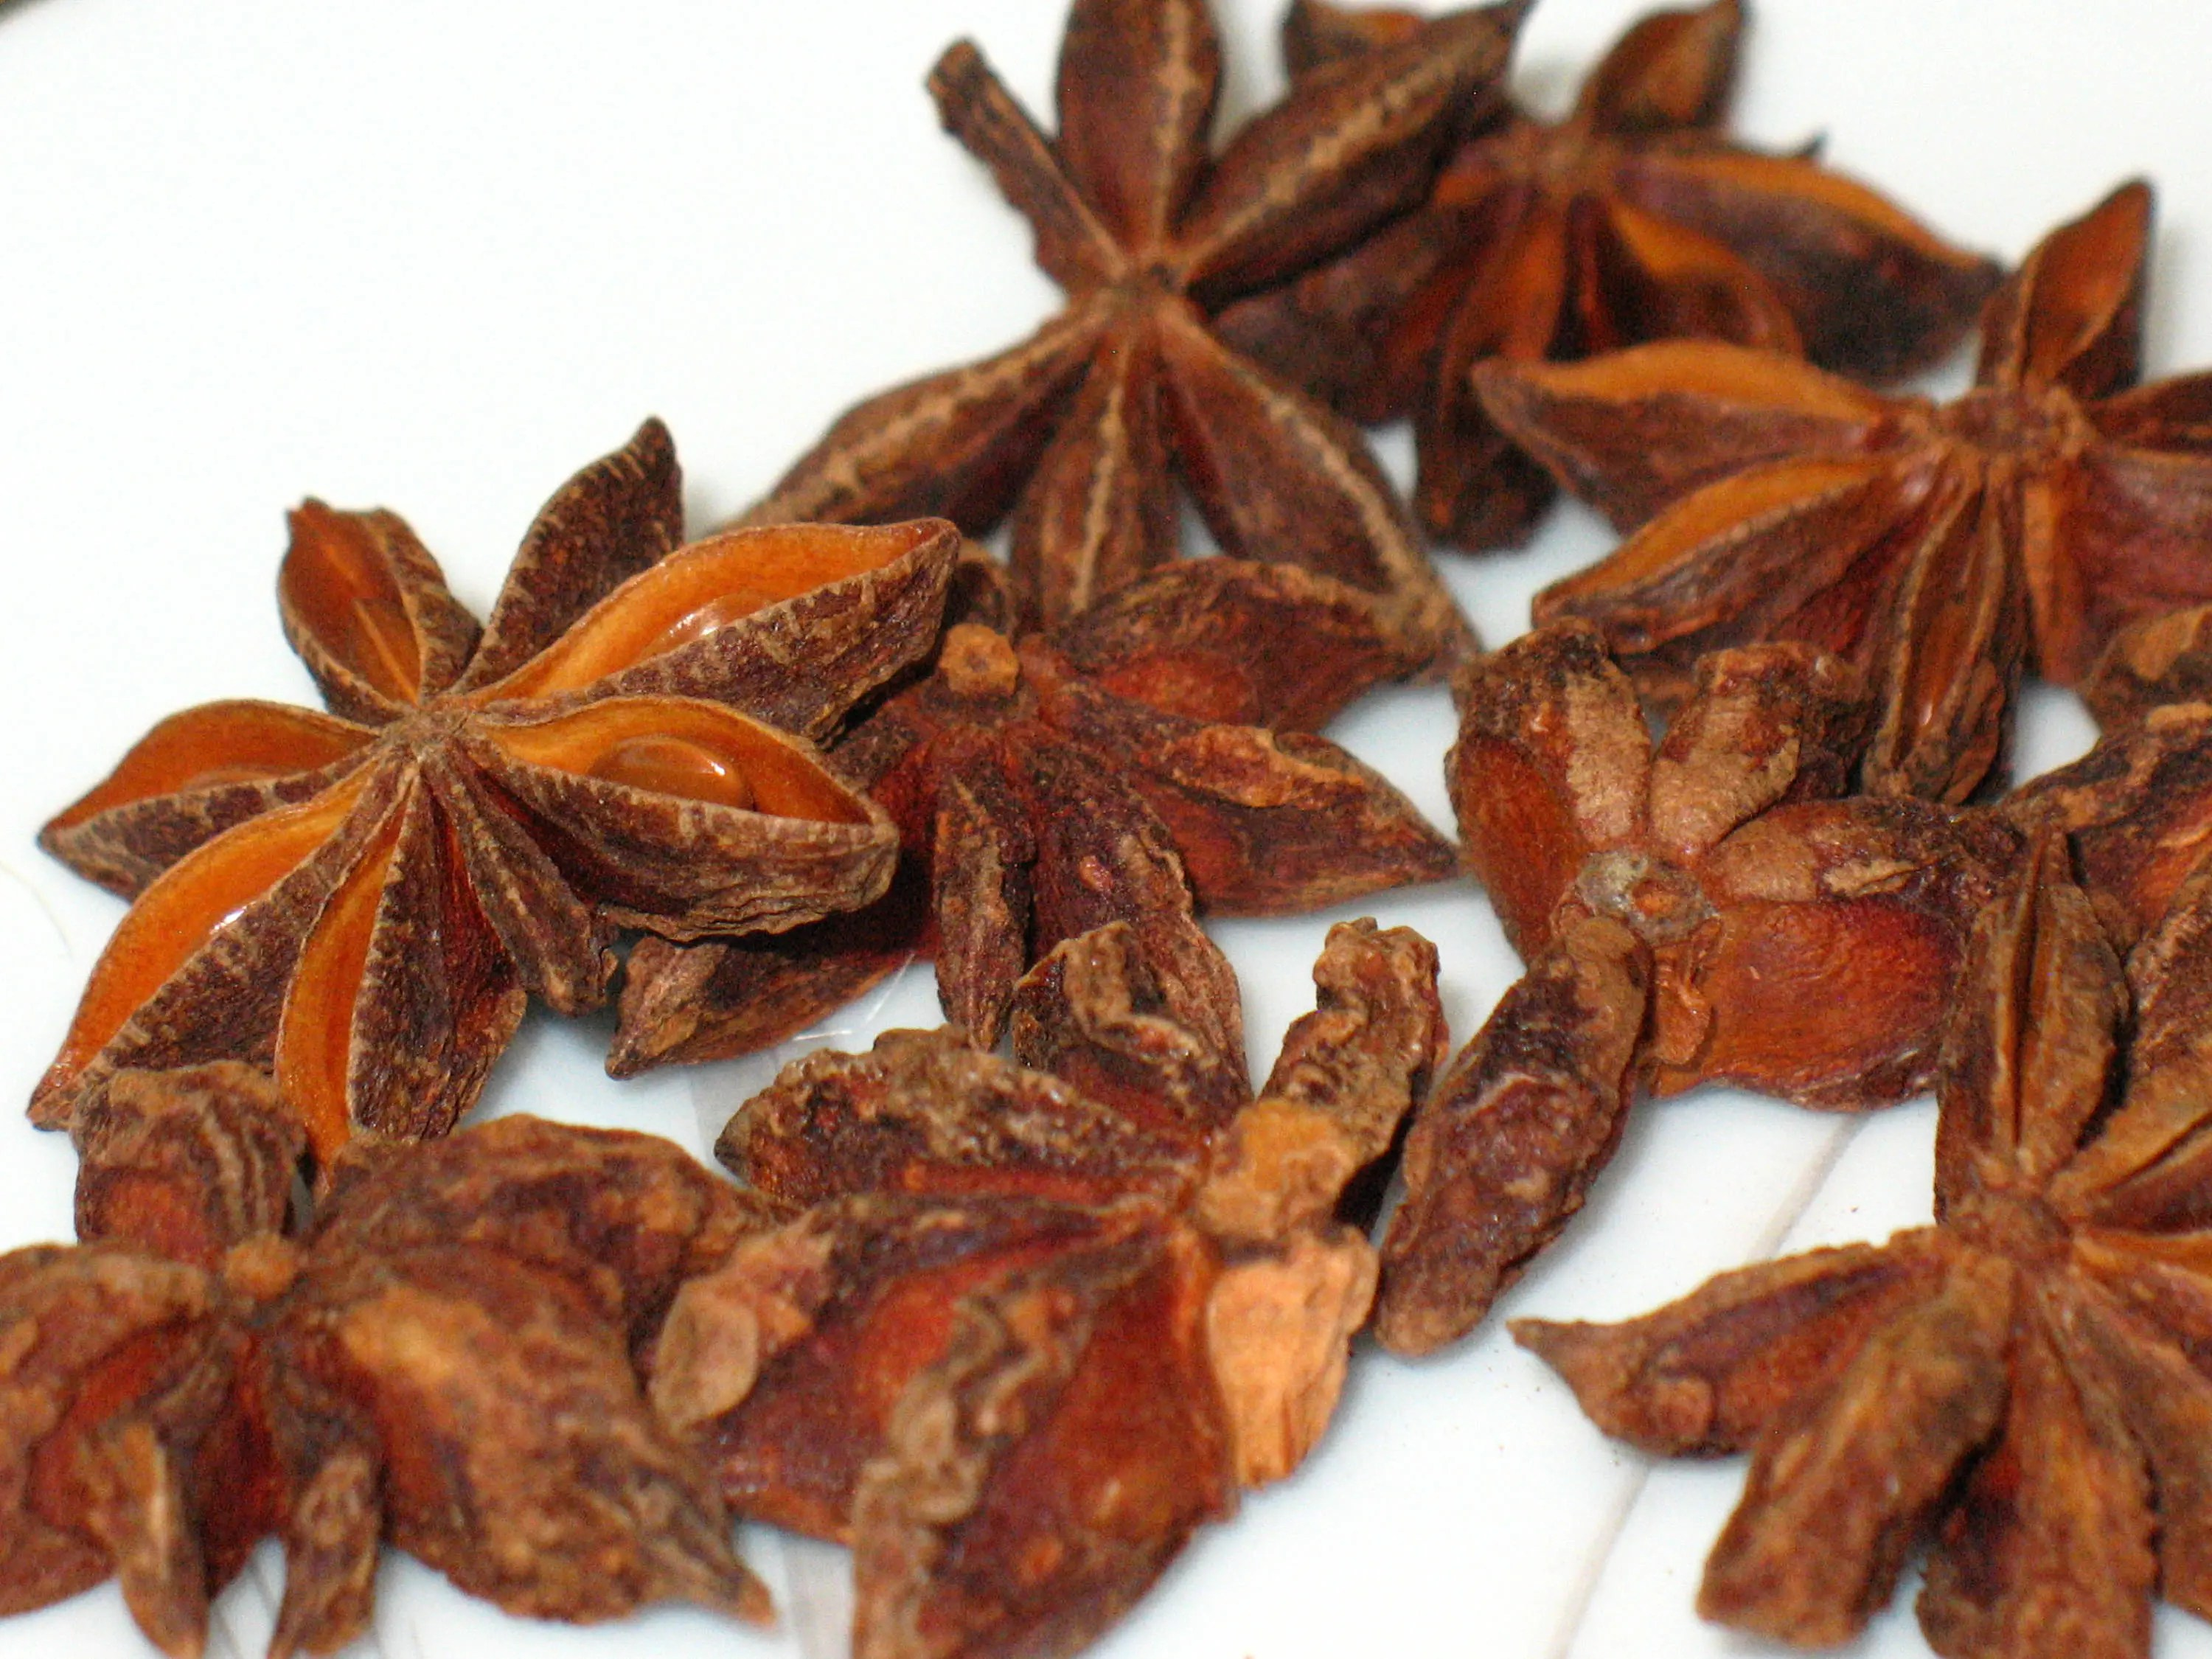 Robust Star Star Off Evil Star Anise Plant Nz Star Anise Plant Wiki houzz-03 Star Anise Plant